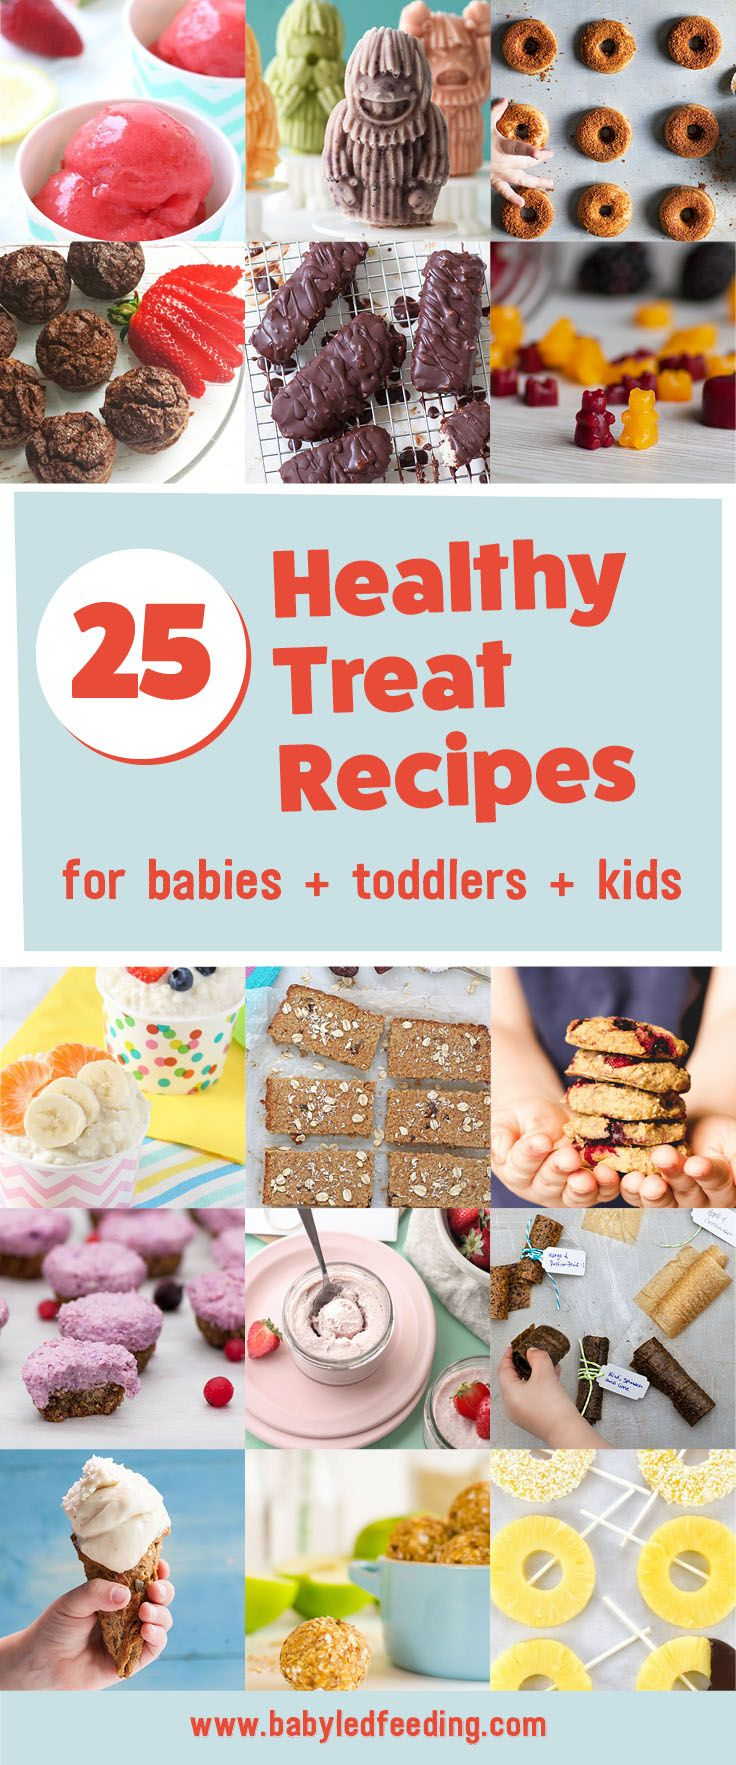 Healthy low sugar treats for babies, toddlers & kids. These healthy treat recipes for children will get them eating better in no time.Perfect from 6 months.